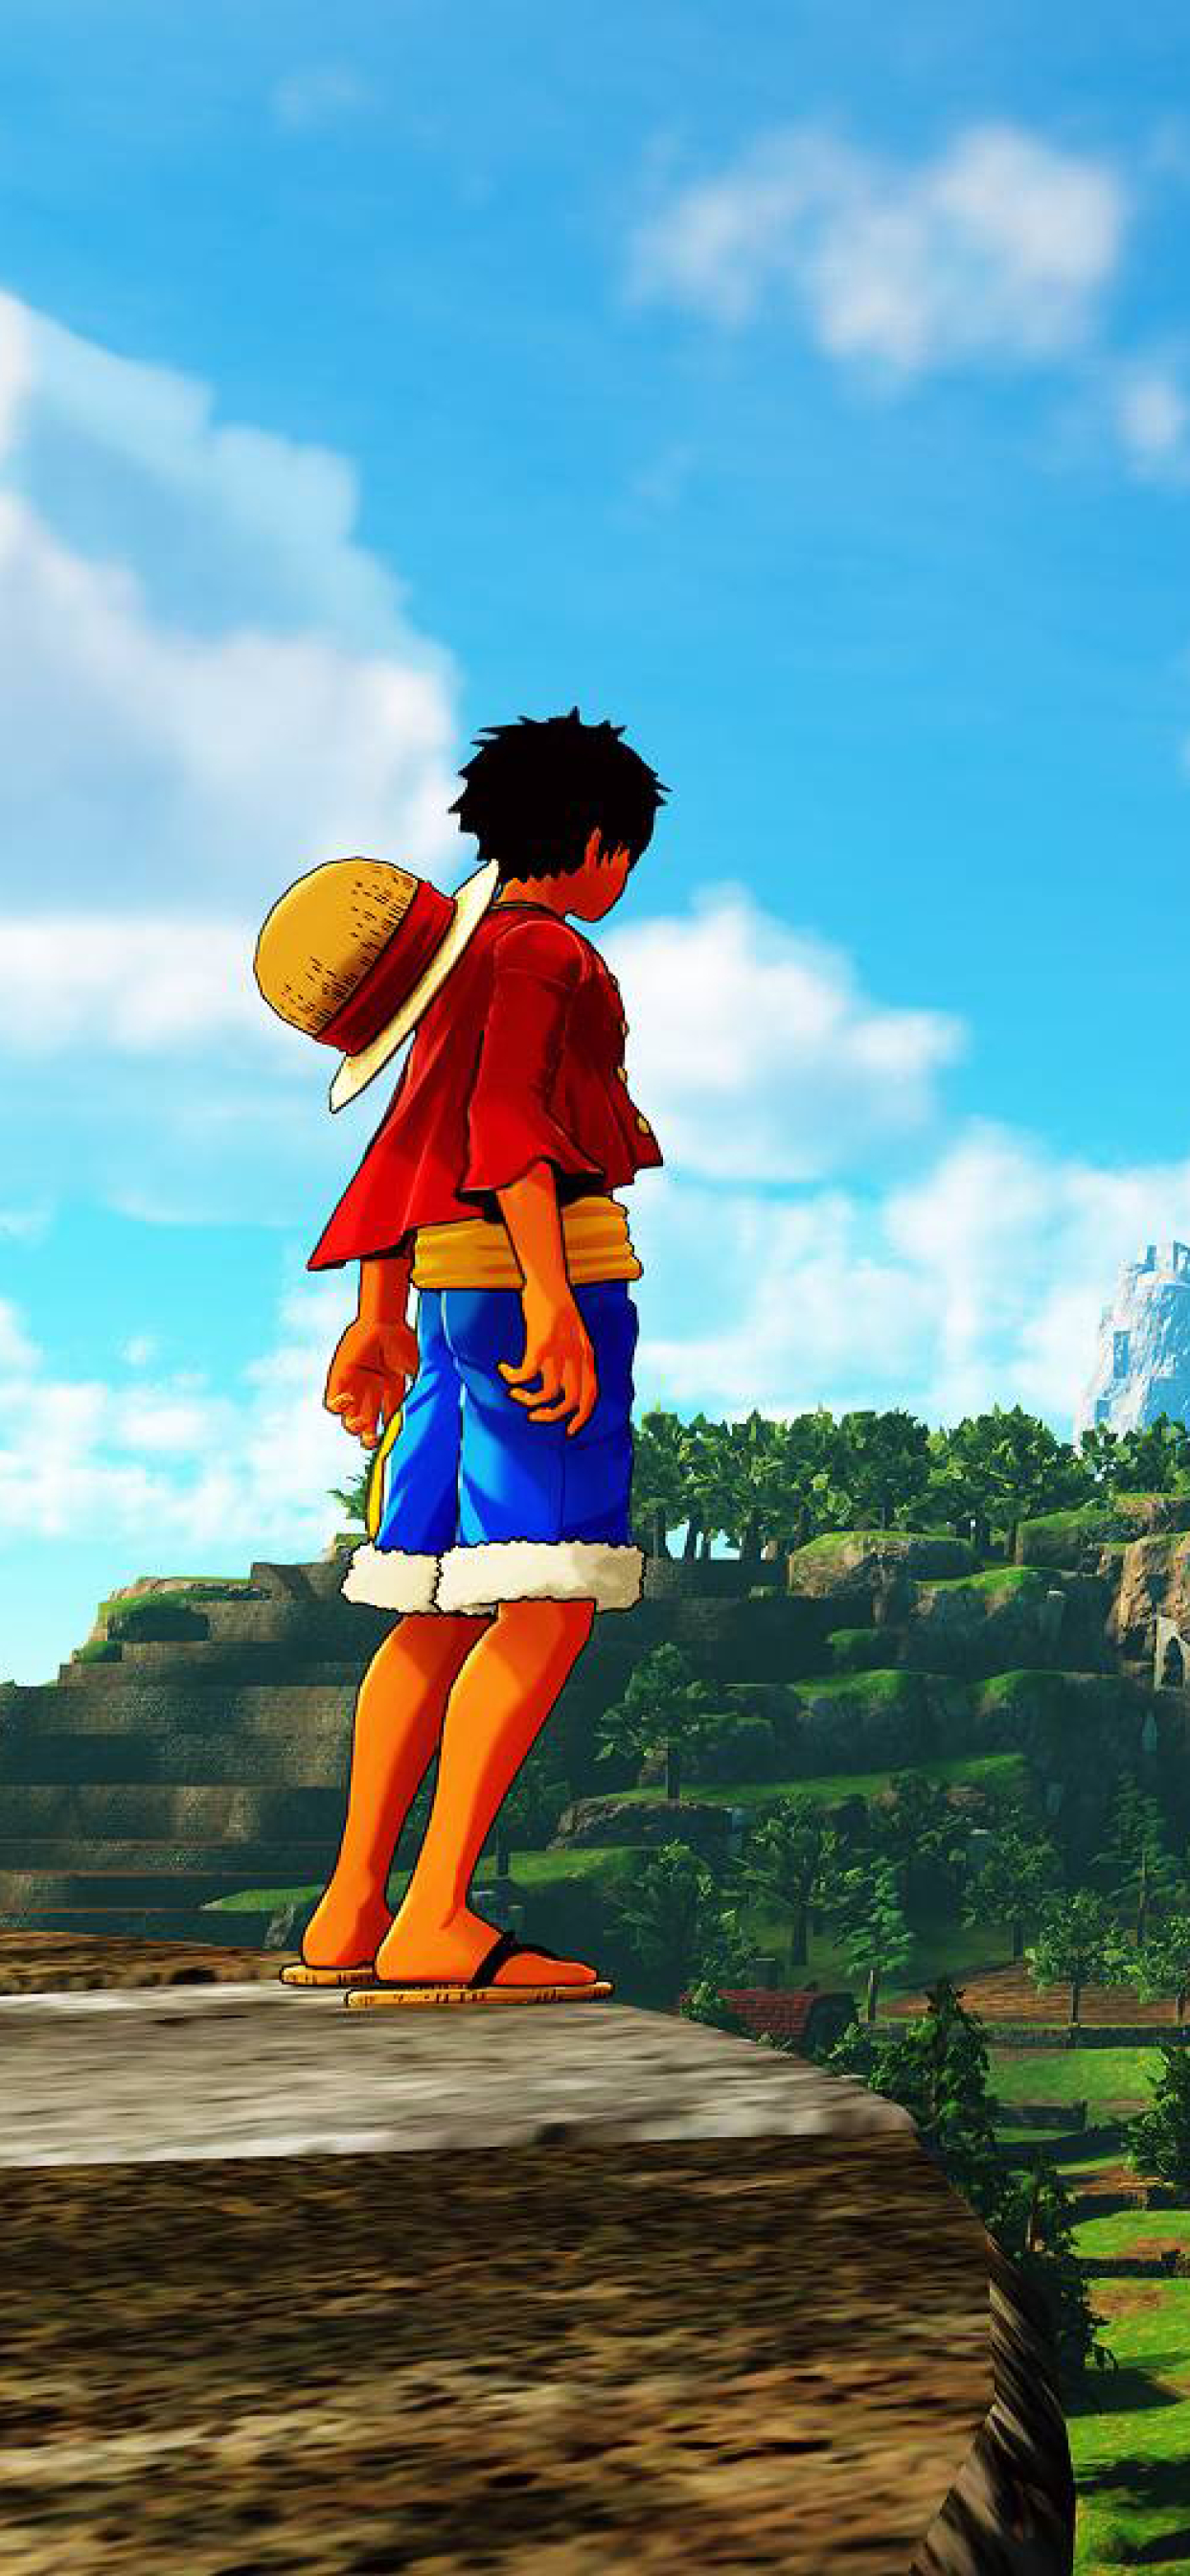 1242x2688 Monkey D Luffy One Piece World Seeker Iphone Xs Max Wallpaper Hd Games 4k Wallpapers Images Photos And Background